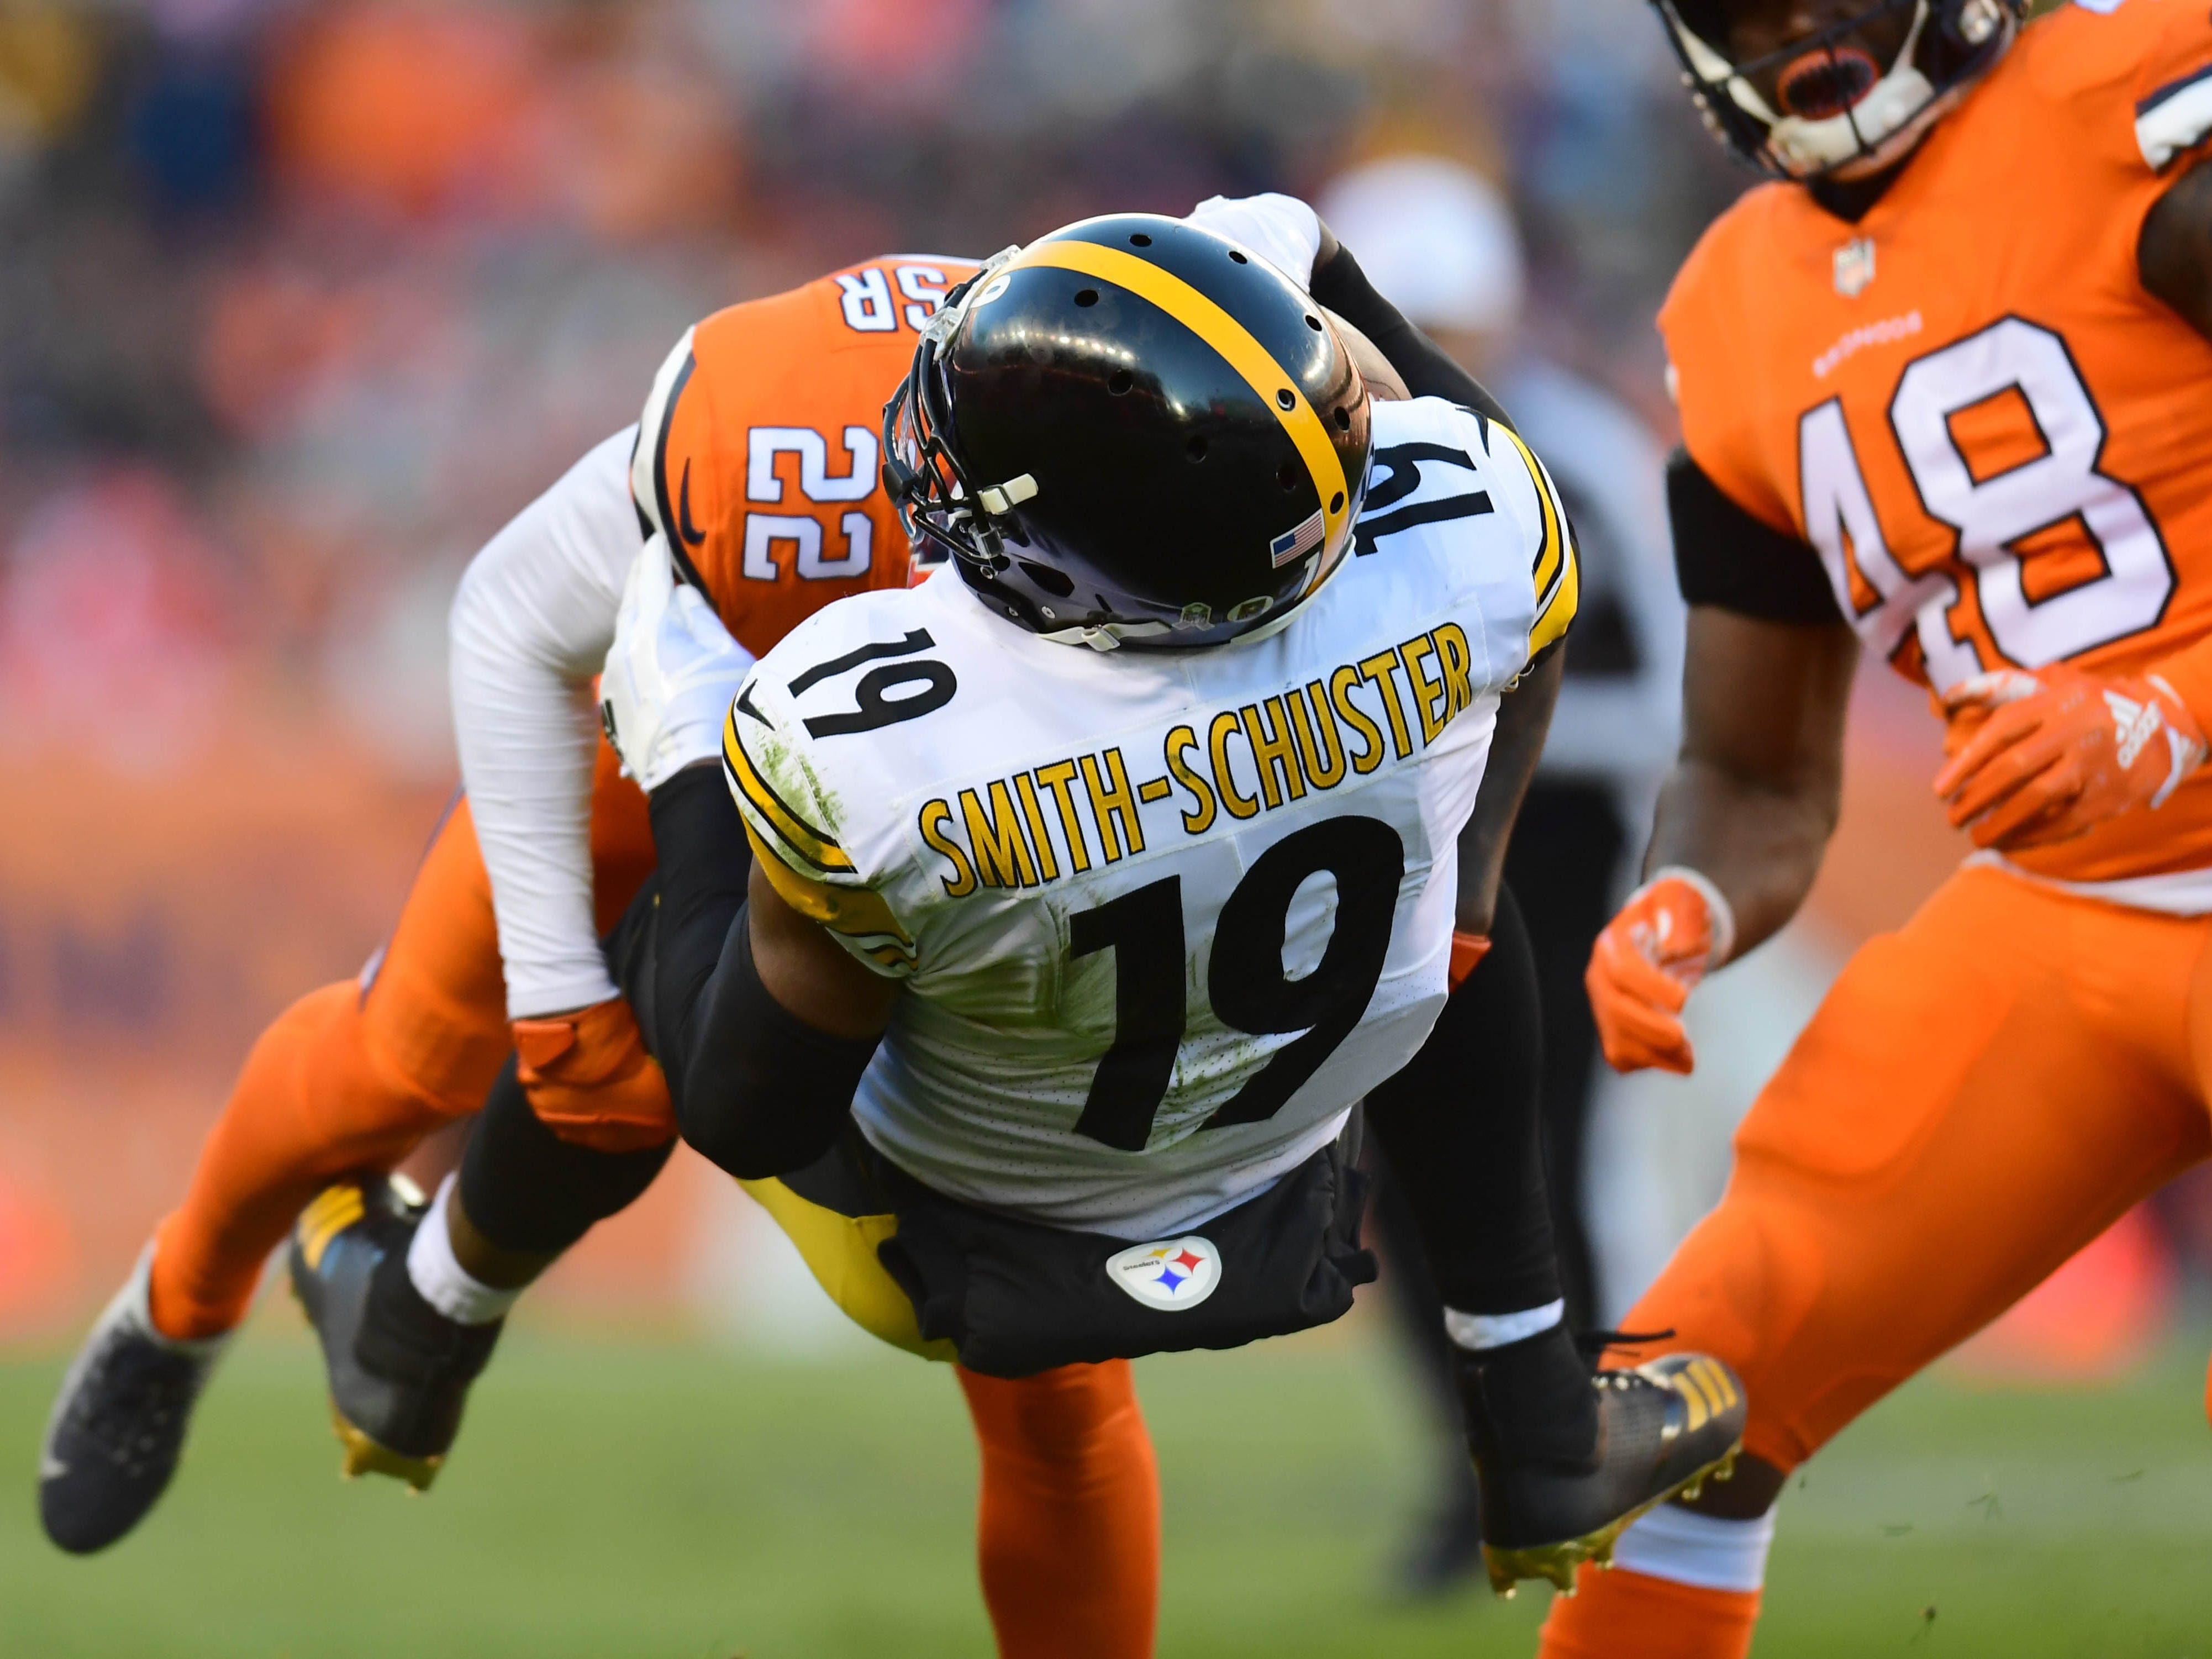 Pittsburgh Steelers wide receiver JuJu Smith-Schuster is tackled by Denver Broncos defensive back Tramaine Brock in a Week 12 matchup at Broncos Stadium at Mile High.